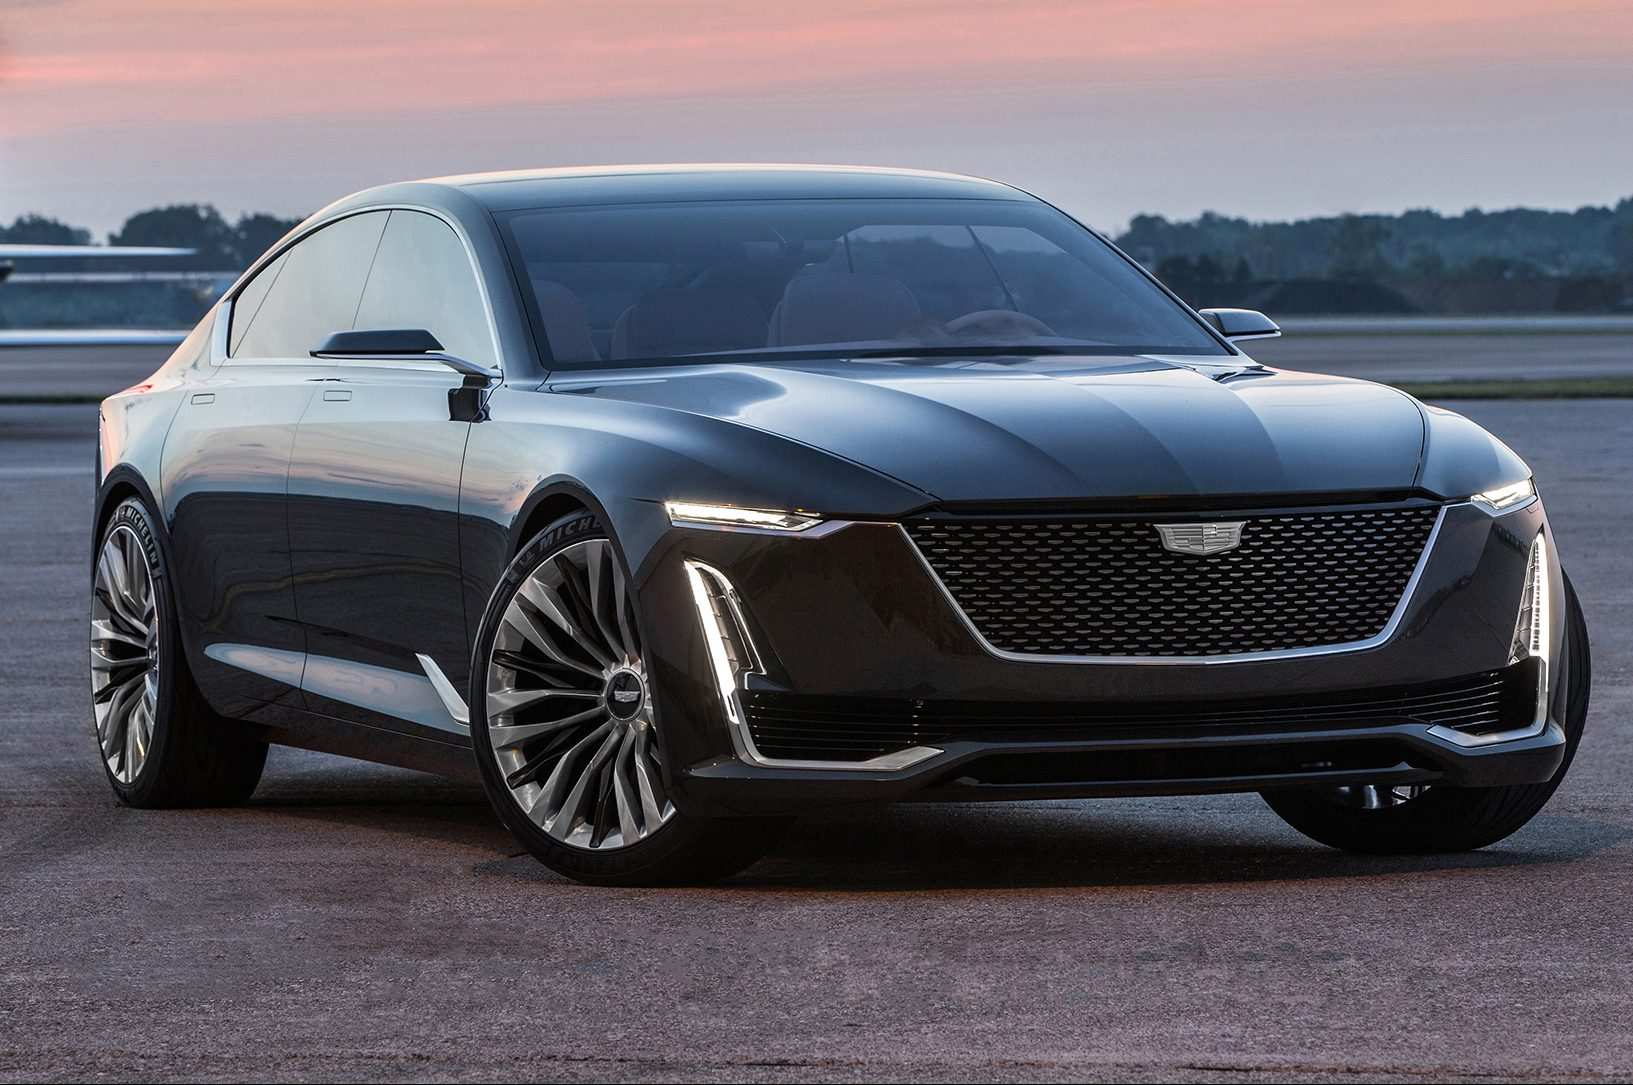 90 New 2020 Cadillac Escalade Body Style Change Style for 2020 Cadillac Escalade Body Style Change